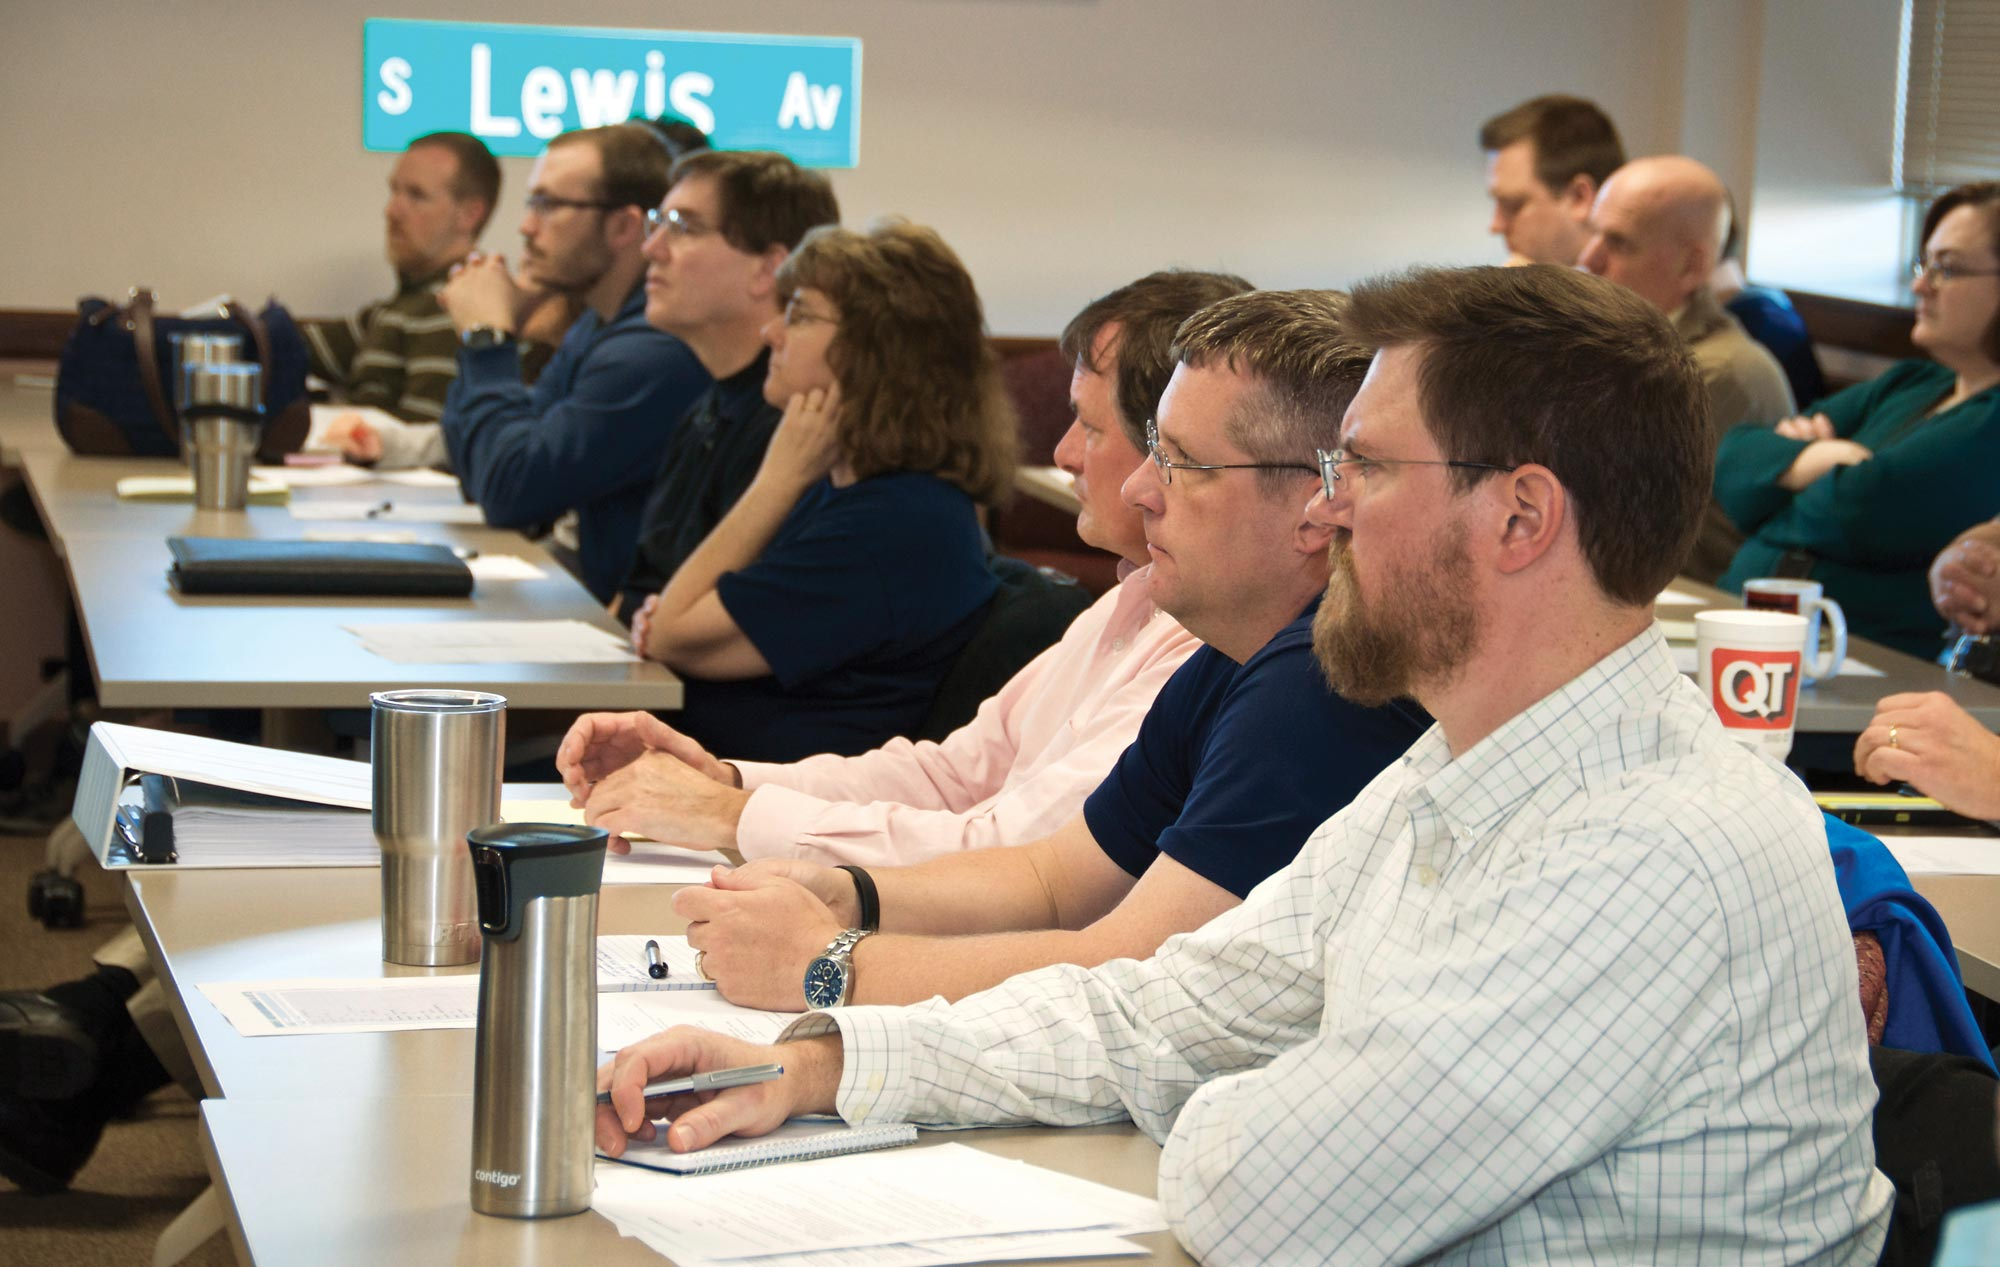 City government workers and community members listen to a presentation in Tulsa, Oklahoma, on the Urban Data Pioneers program, which recruits volunteers to analyze city data to help understand and solve local problems.